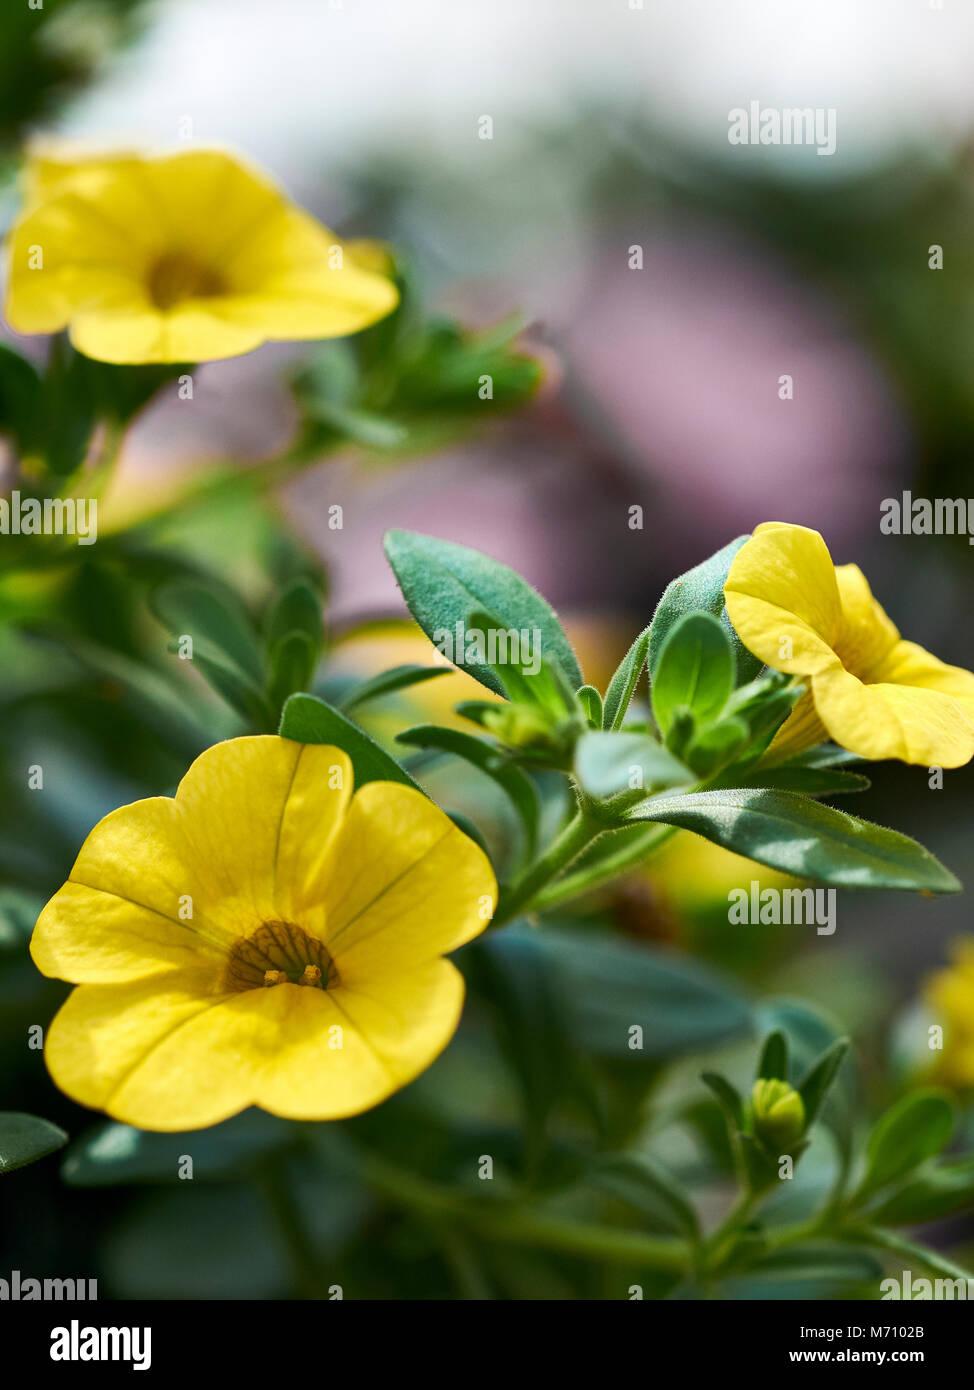 Close up of yellow petunia flowers in full bloom, also known as Solanaceae. - Stock Image